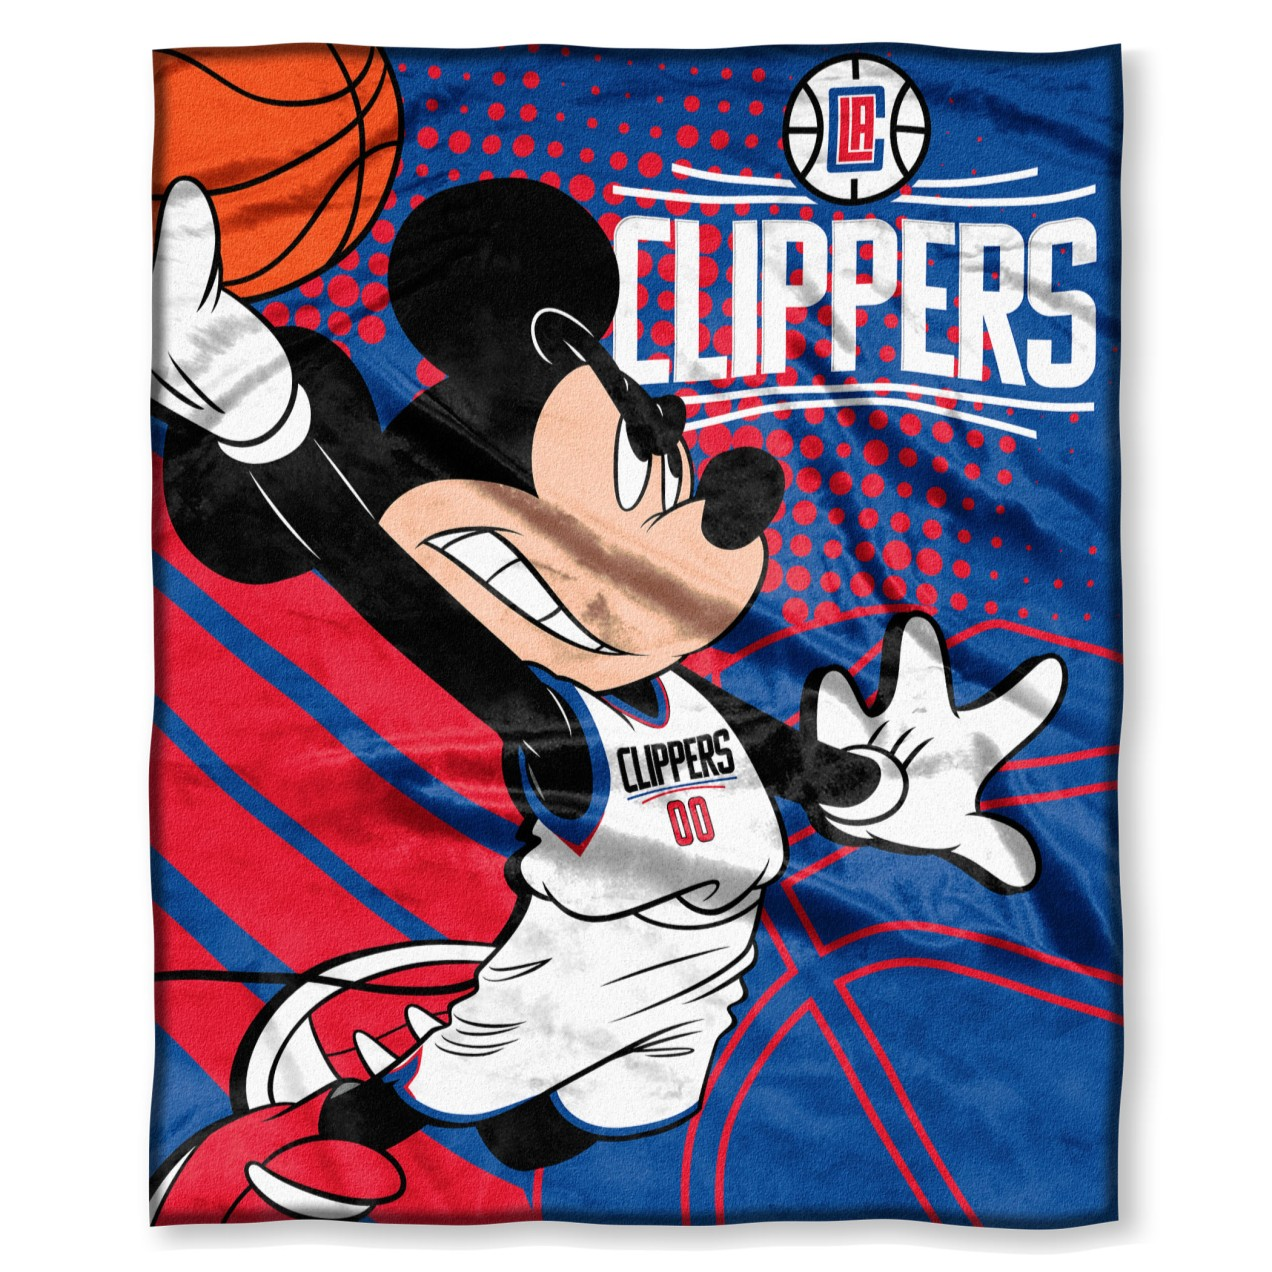 IM_575_COB NBA_slam dunk_clippers